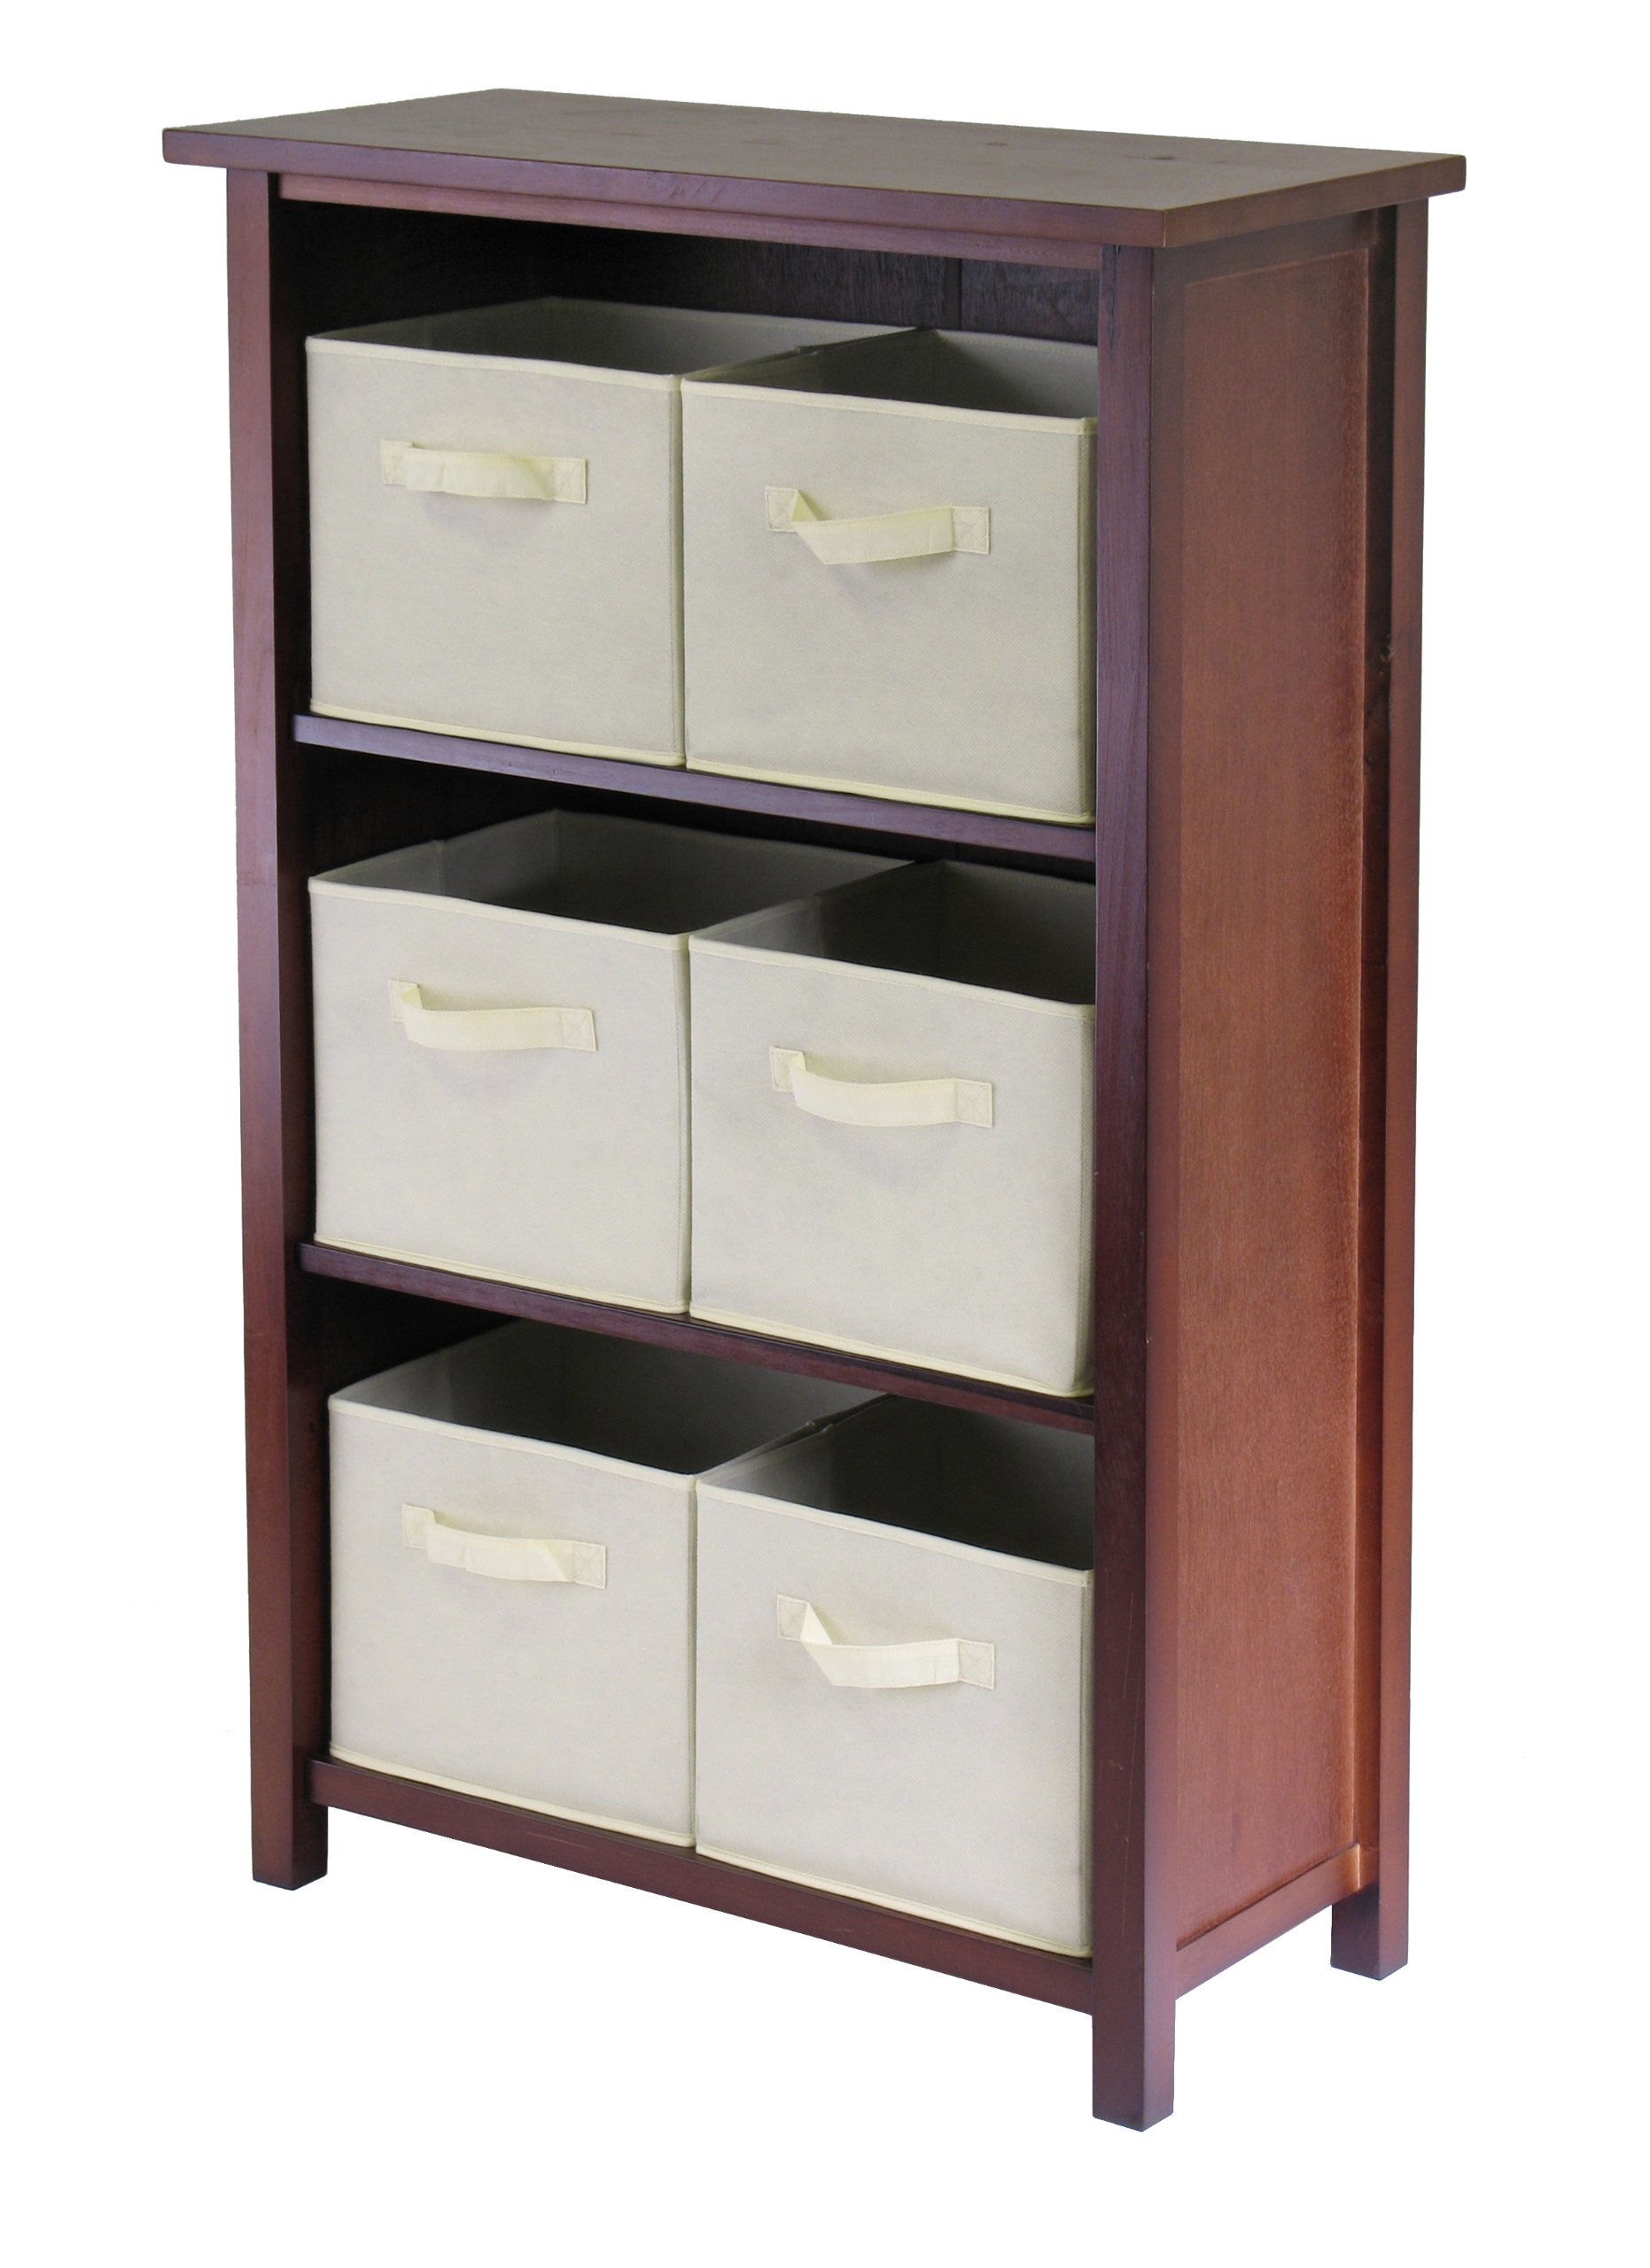 Winsome Wood Verona Wood 4 Tier Open Cabinet with 6 Beige Folding Fabric Baskets